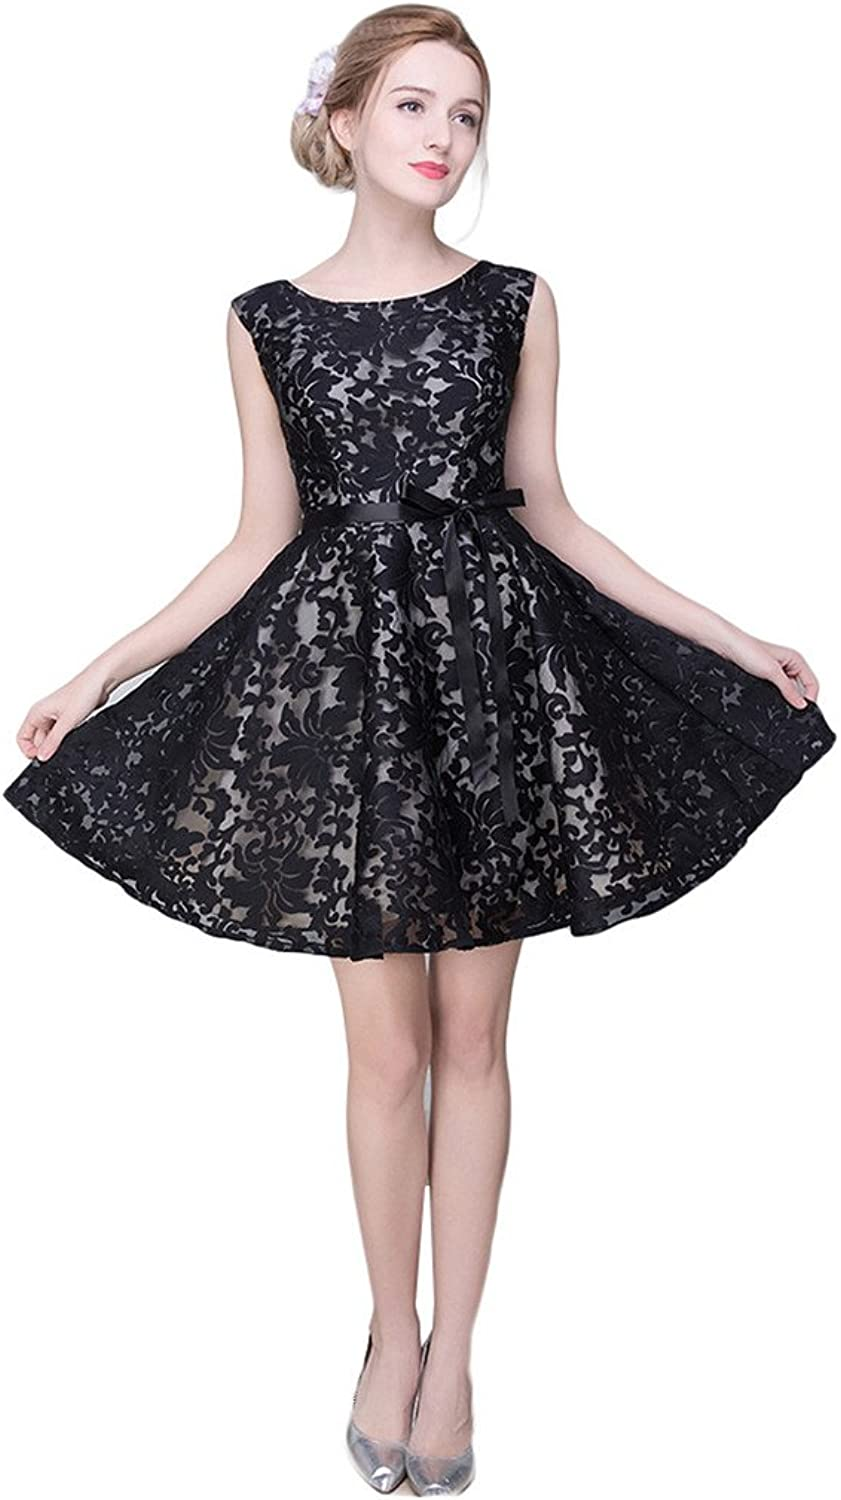 Drasawee Juniors Short Aline Homecoming Dress Cocktail Ball Party Gowns BlackUS14